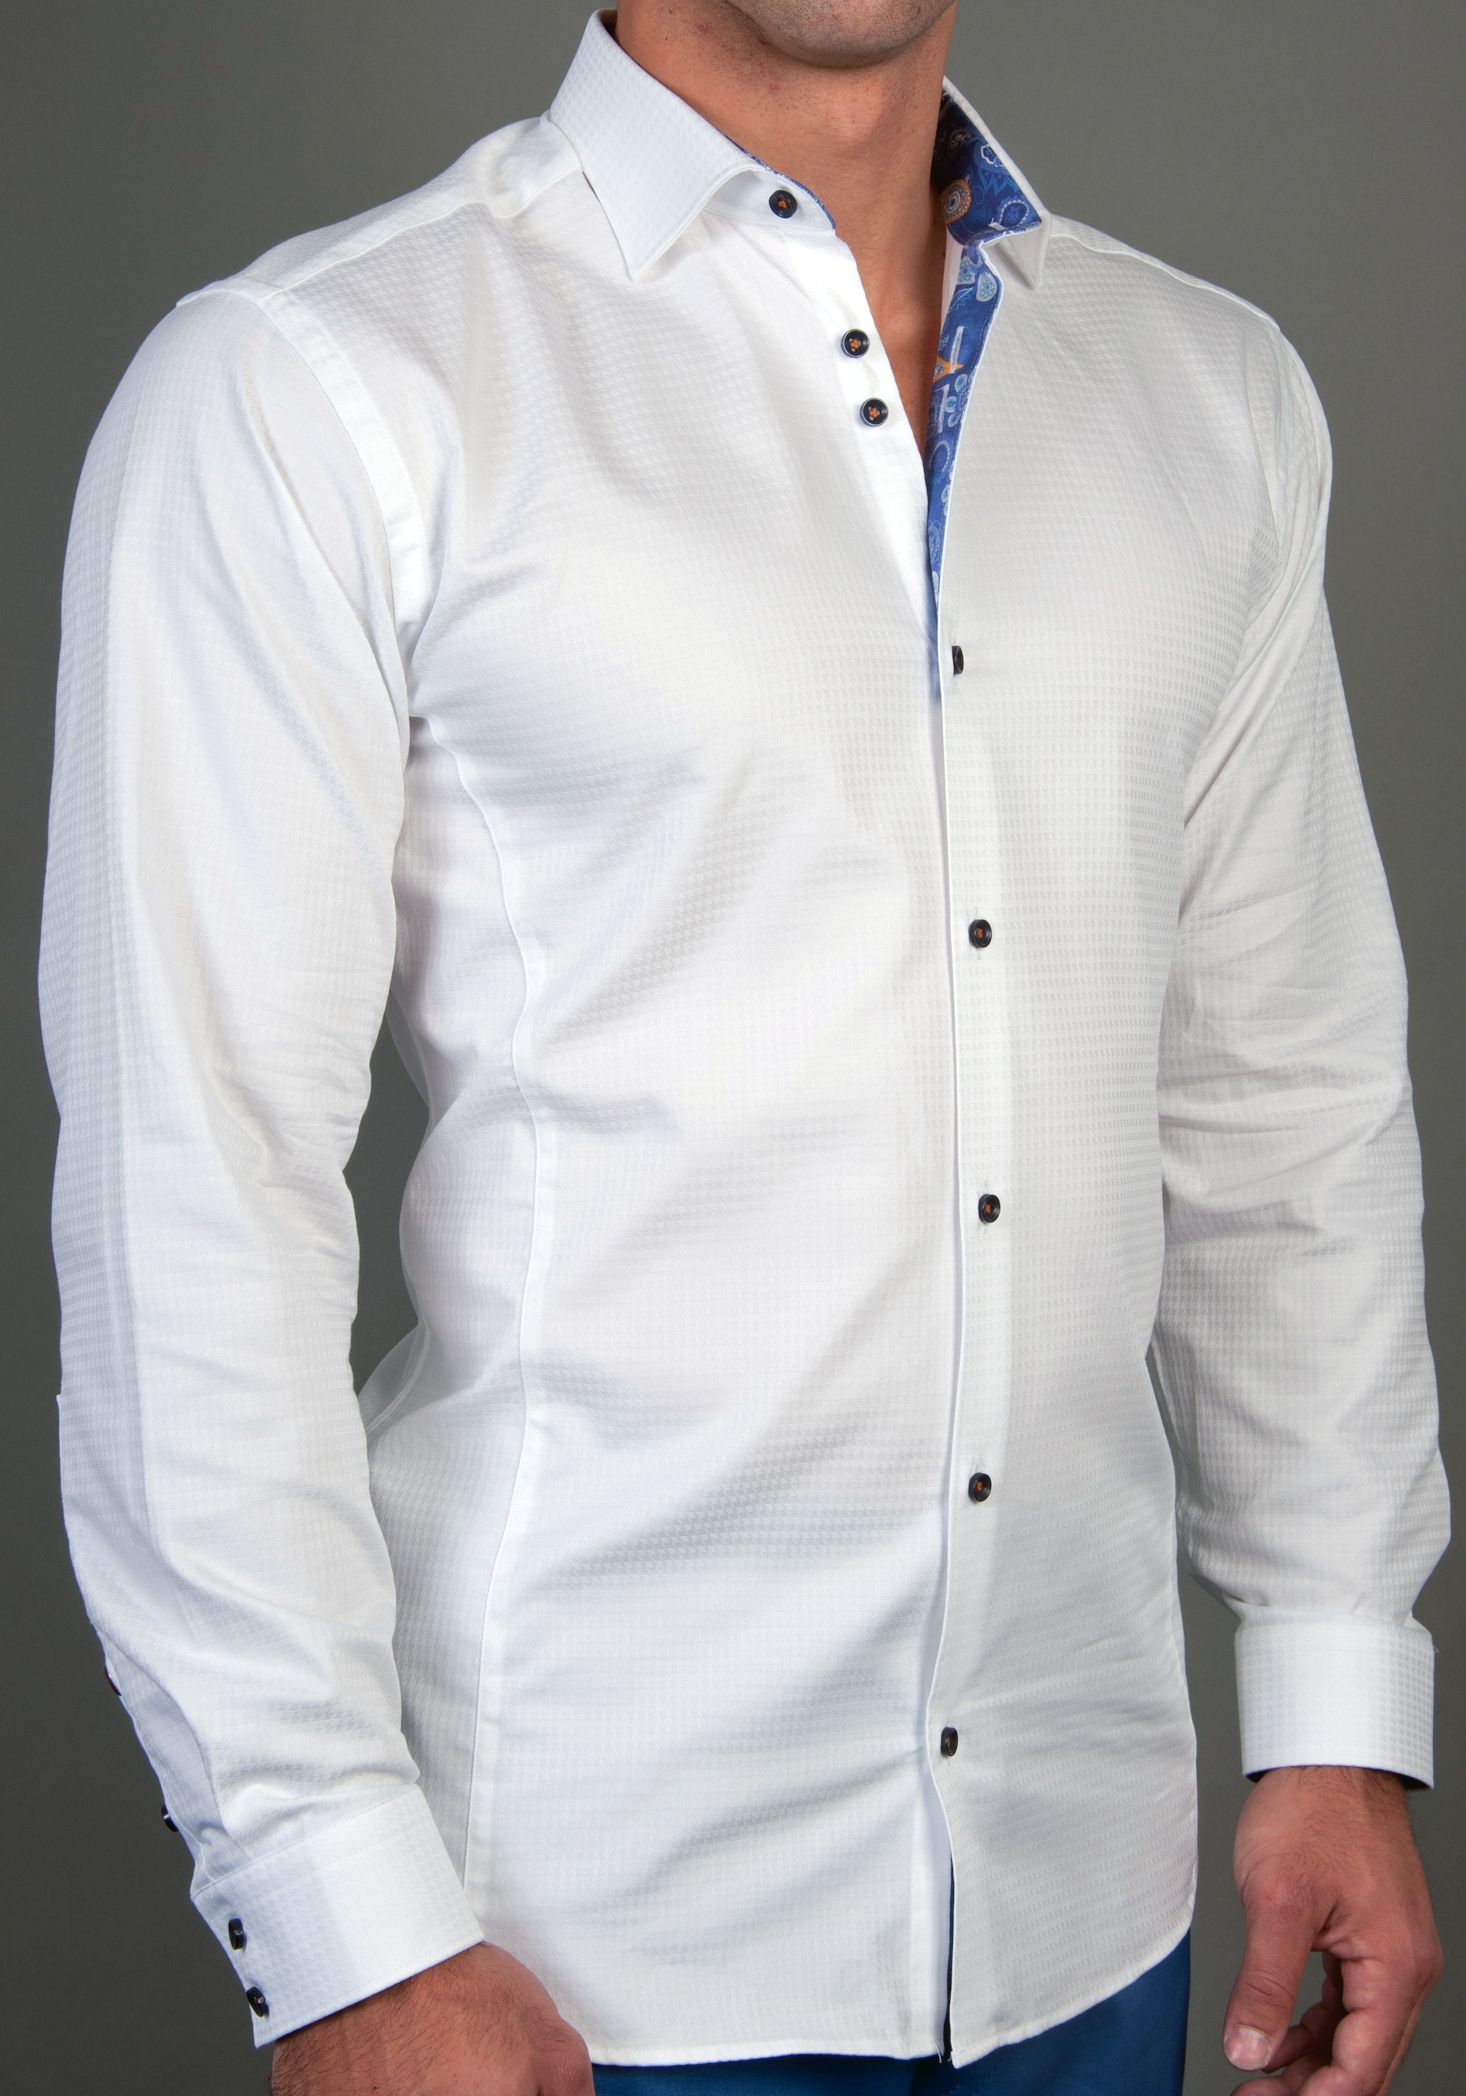 MIA 900   Shirt   men #White | Men's designer clothes | Pinterest ...